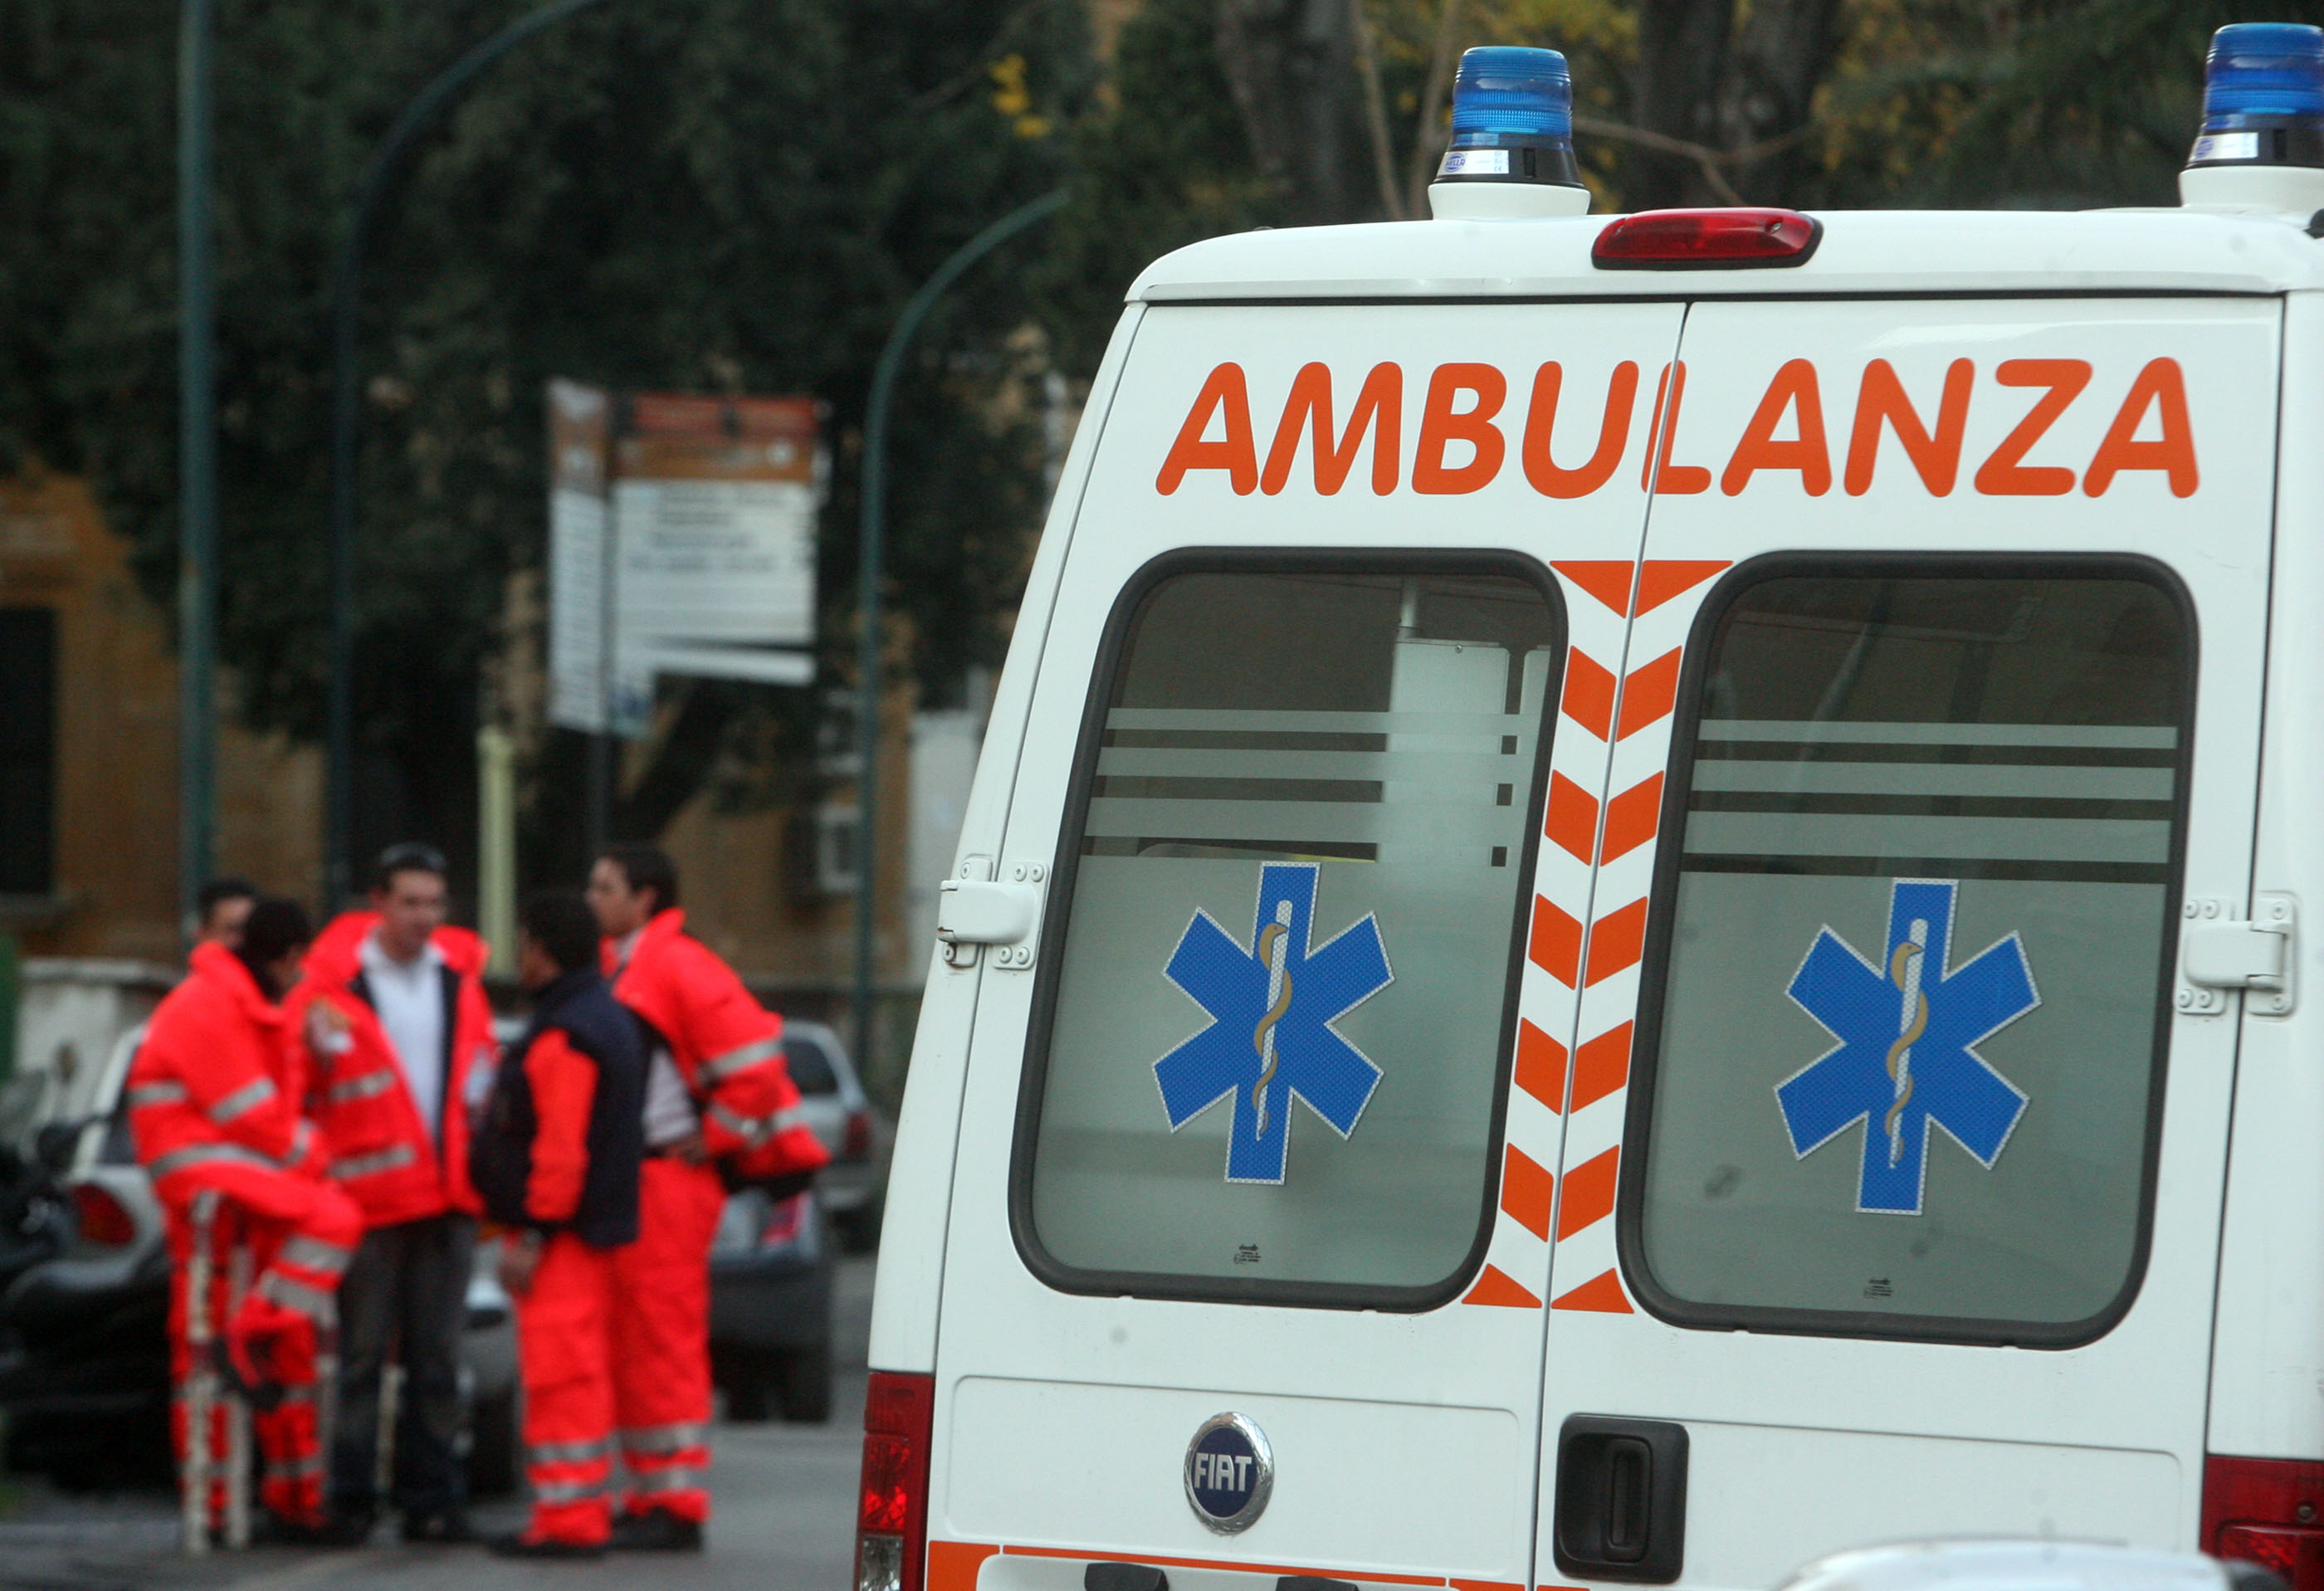 Incidente stradale a Butera a causa del maltempo, due feriti